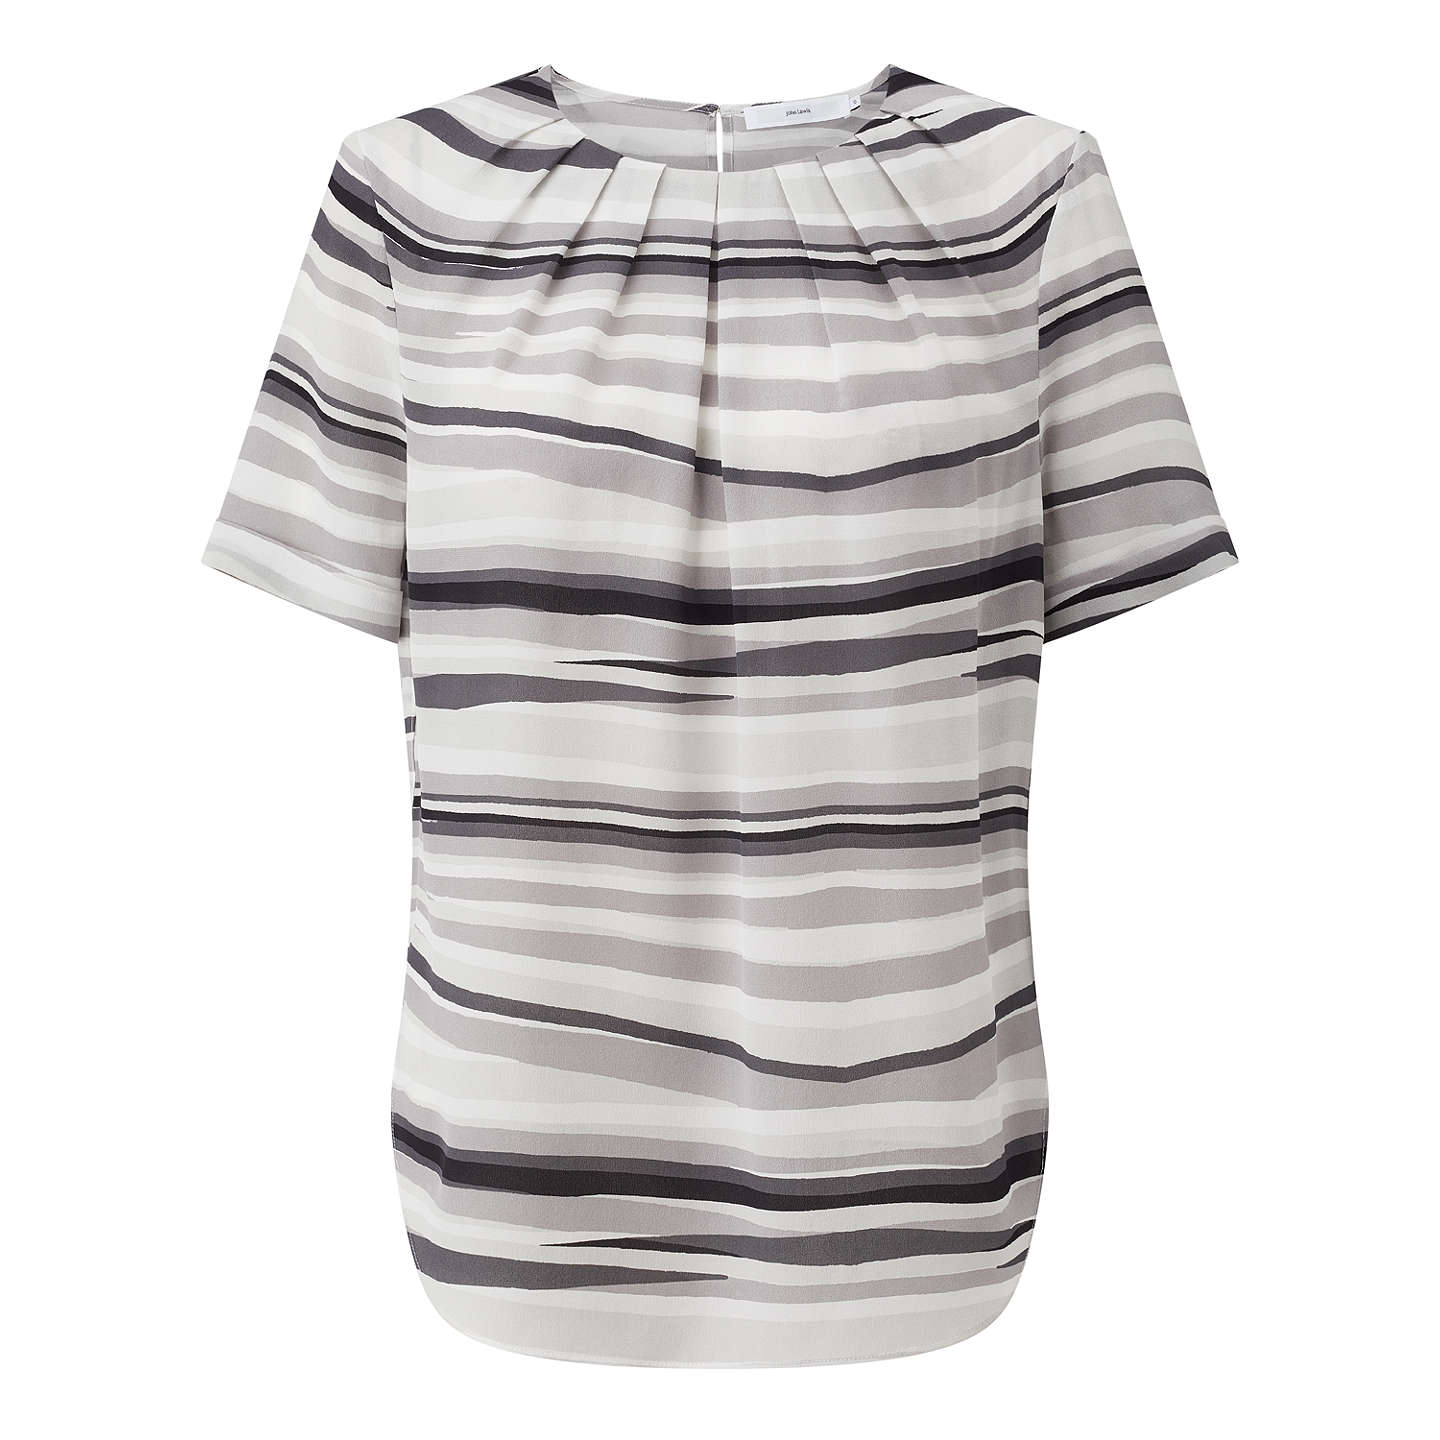 BuyJohn Lewis Darcie Wave Stripe Silk Blouse, Grey/Multi, 8 Online at johnlewis.com